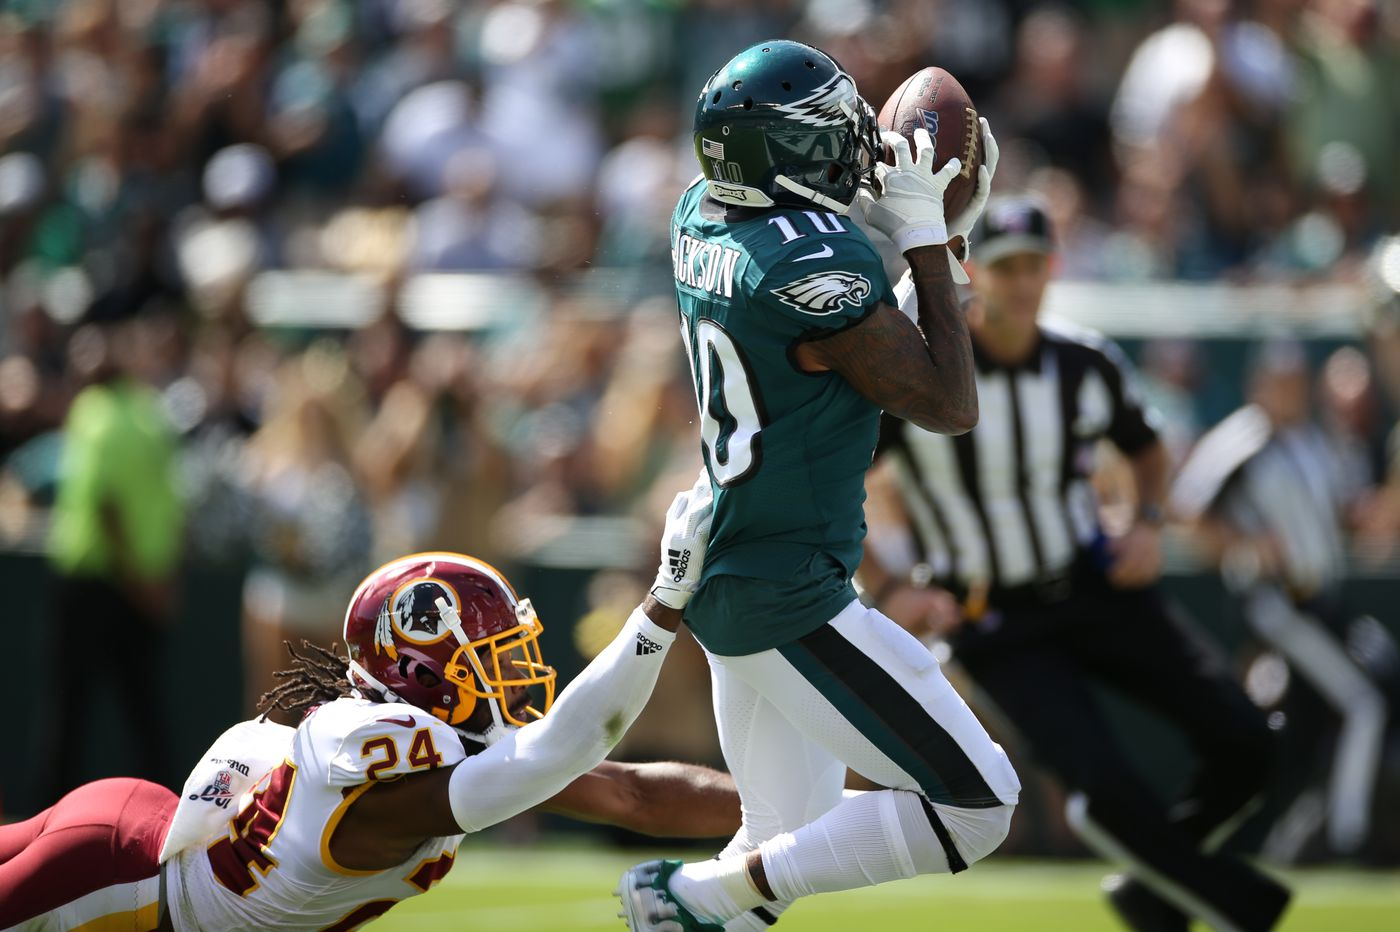 Eagles 32, Redskins 27 - as it happened